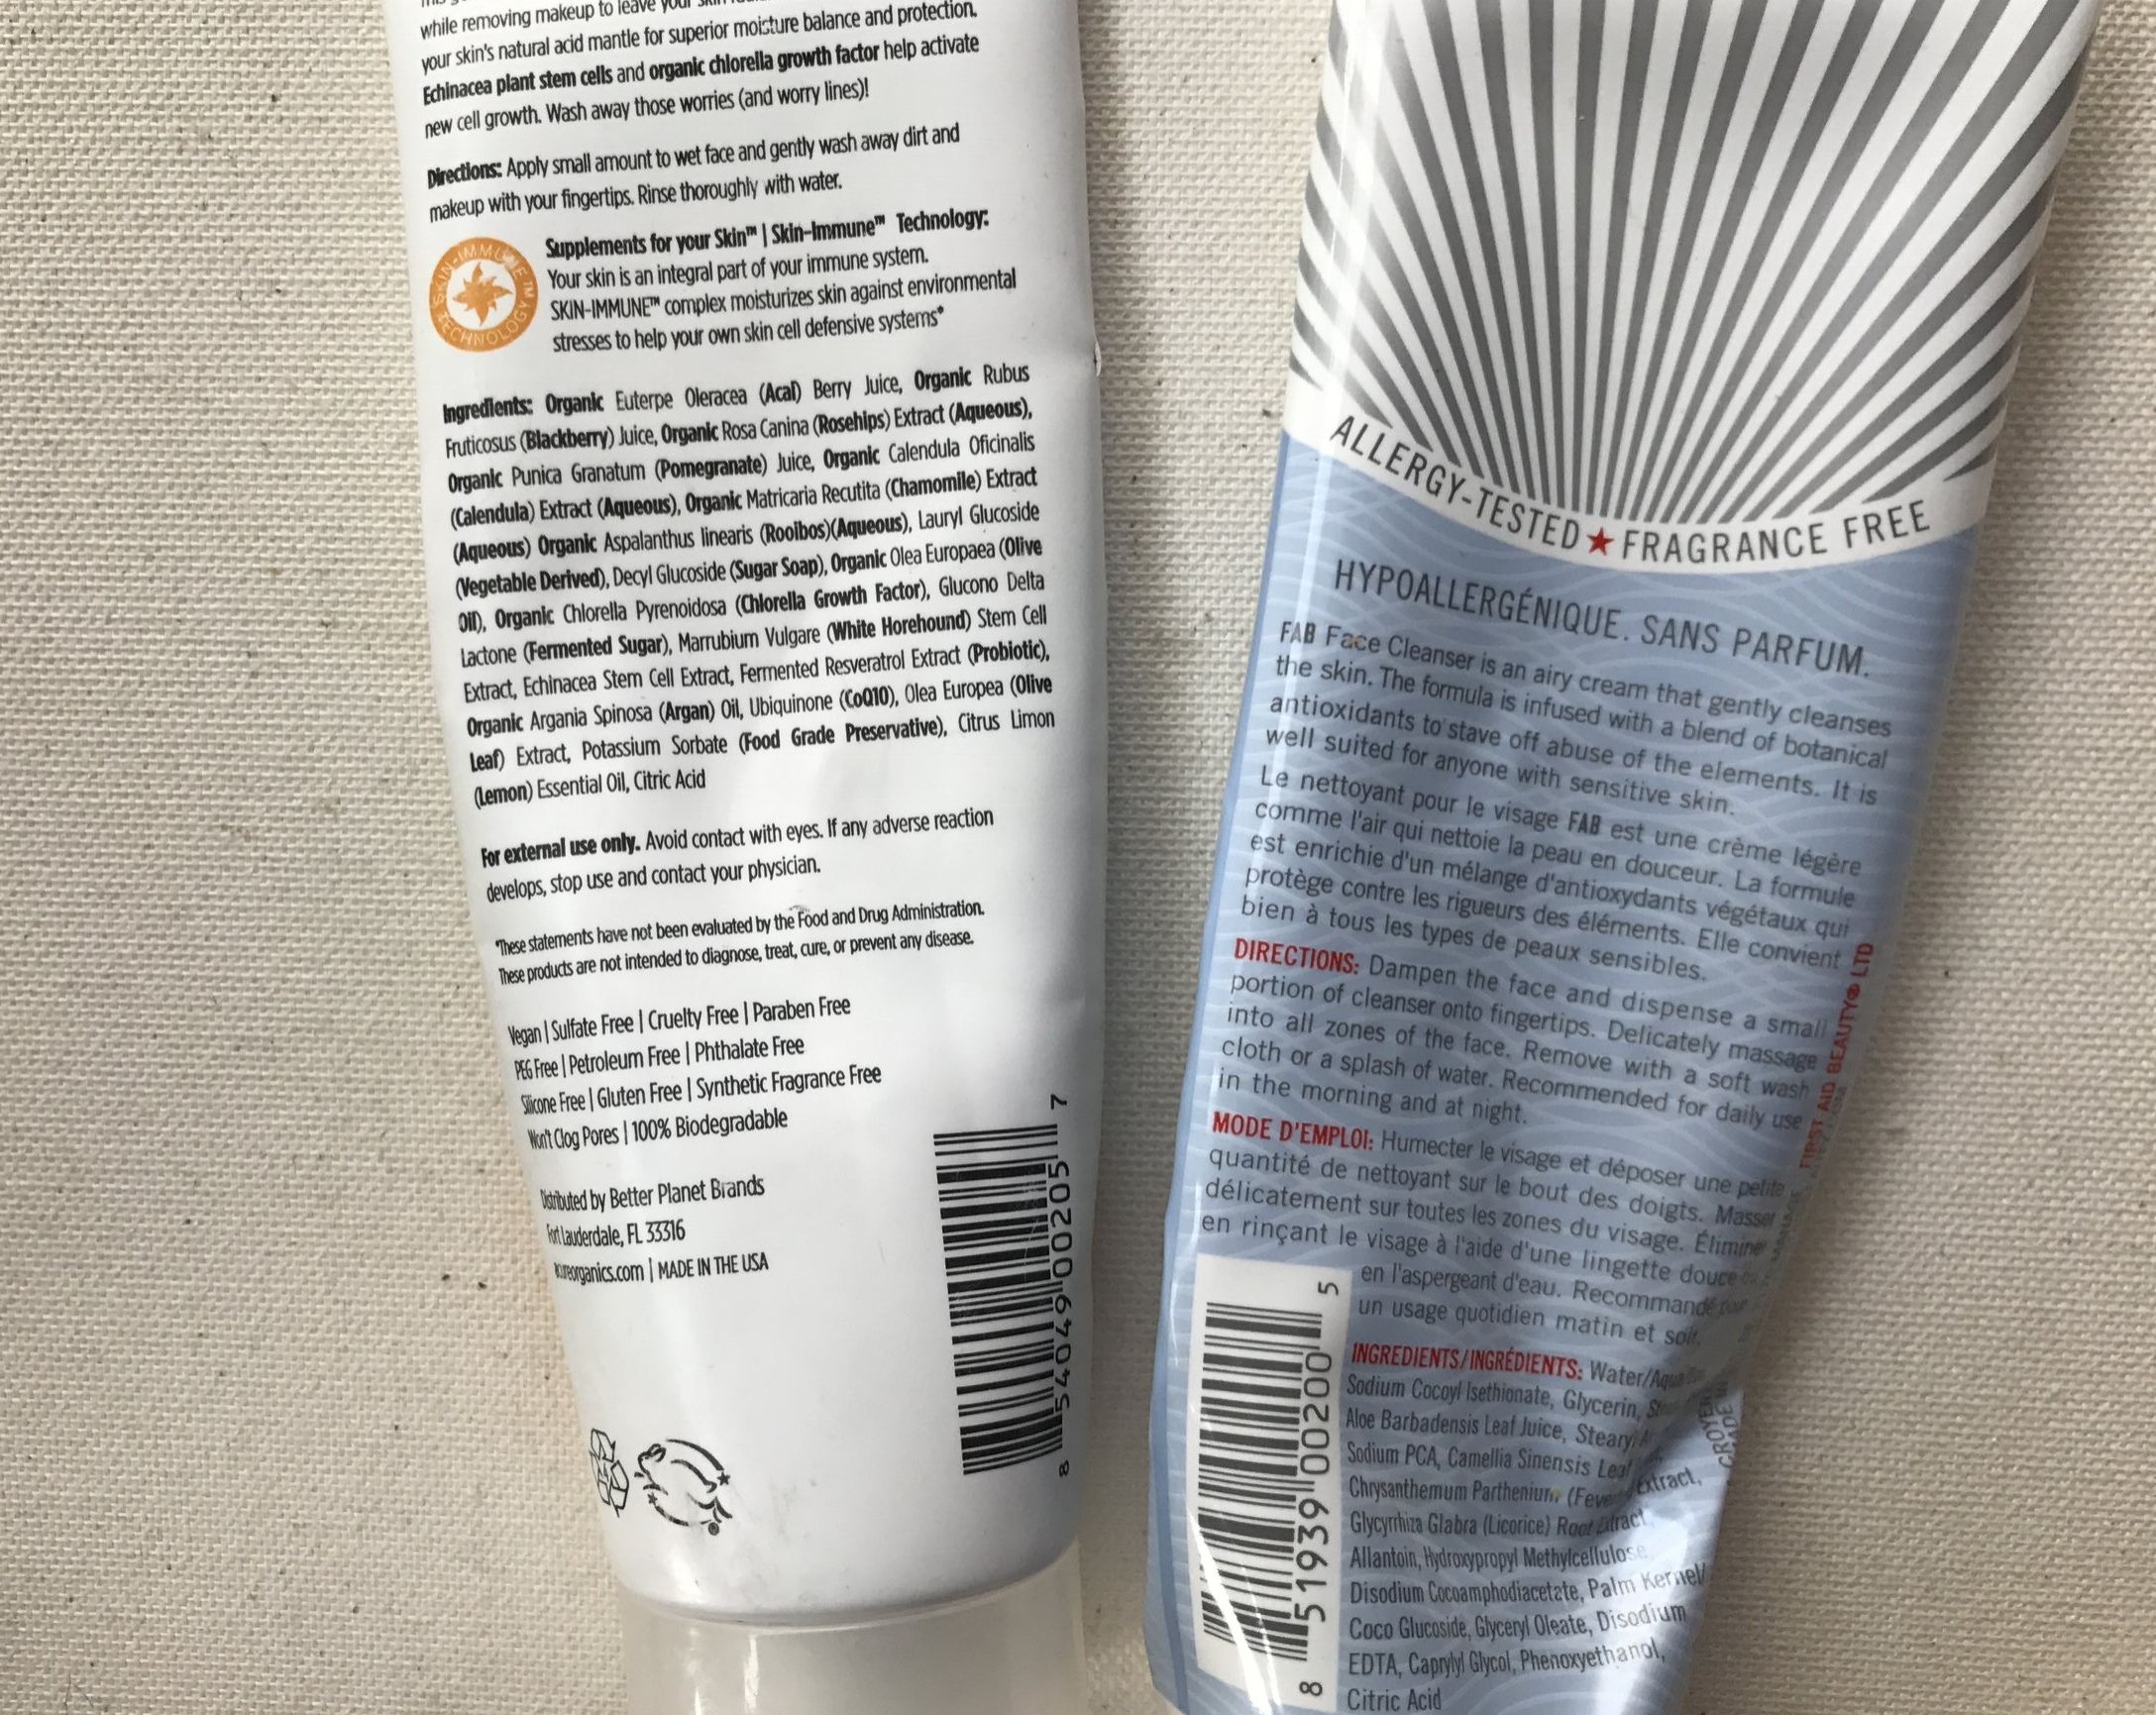 Acure cleanser + First Aid Beauty Cleanser